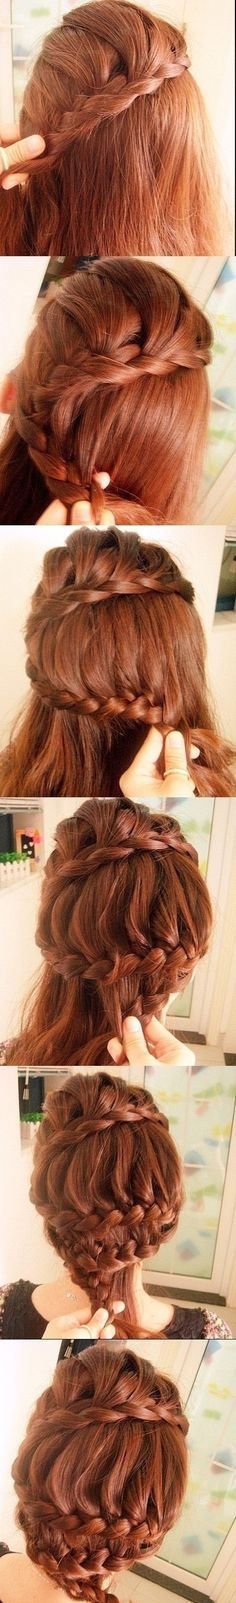 small hair pins following the line of the braids with a star motif would look amazing and wouldn't hide the really pretty braids